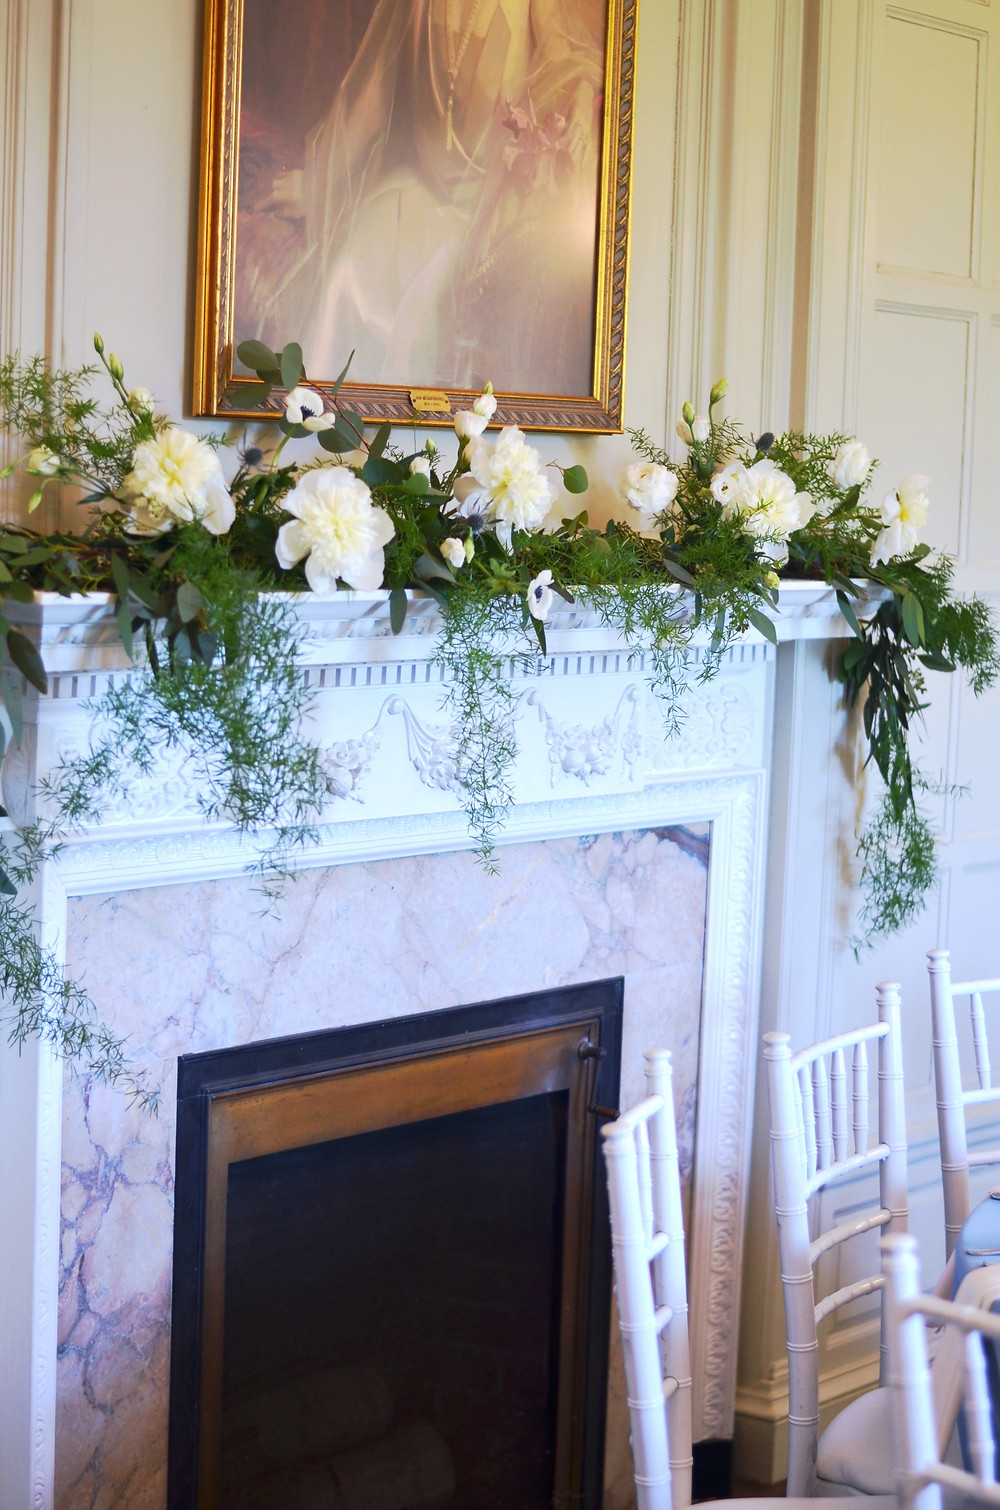 Mantle flower decoration at Eolia Mansion, Harkness State